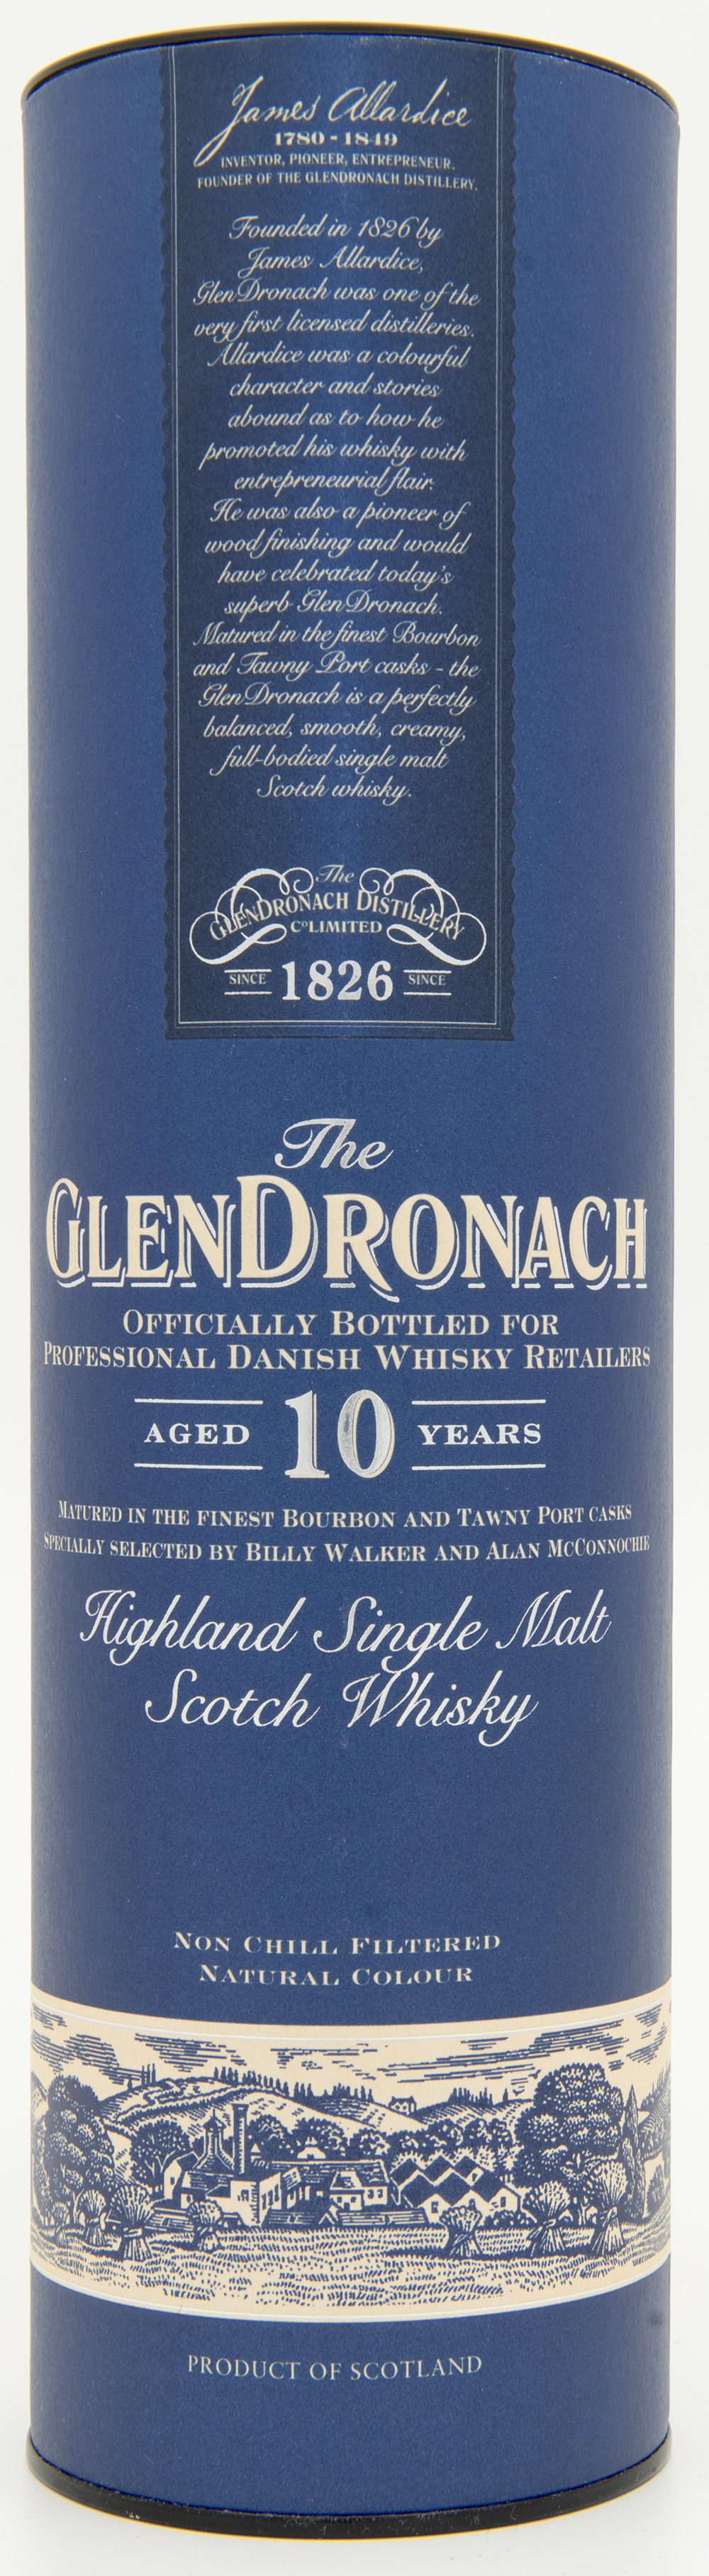 Billede: DSC_4819 - The Glendronach 10 - tube front.jpg